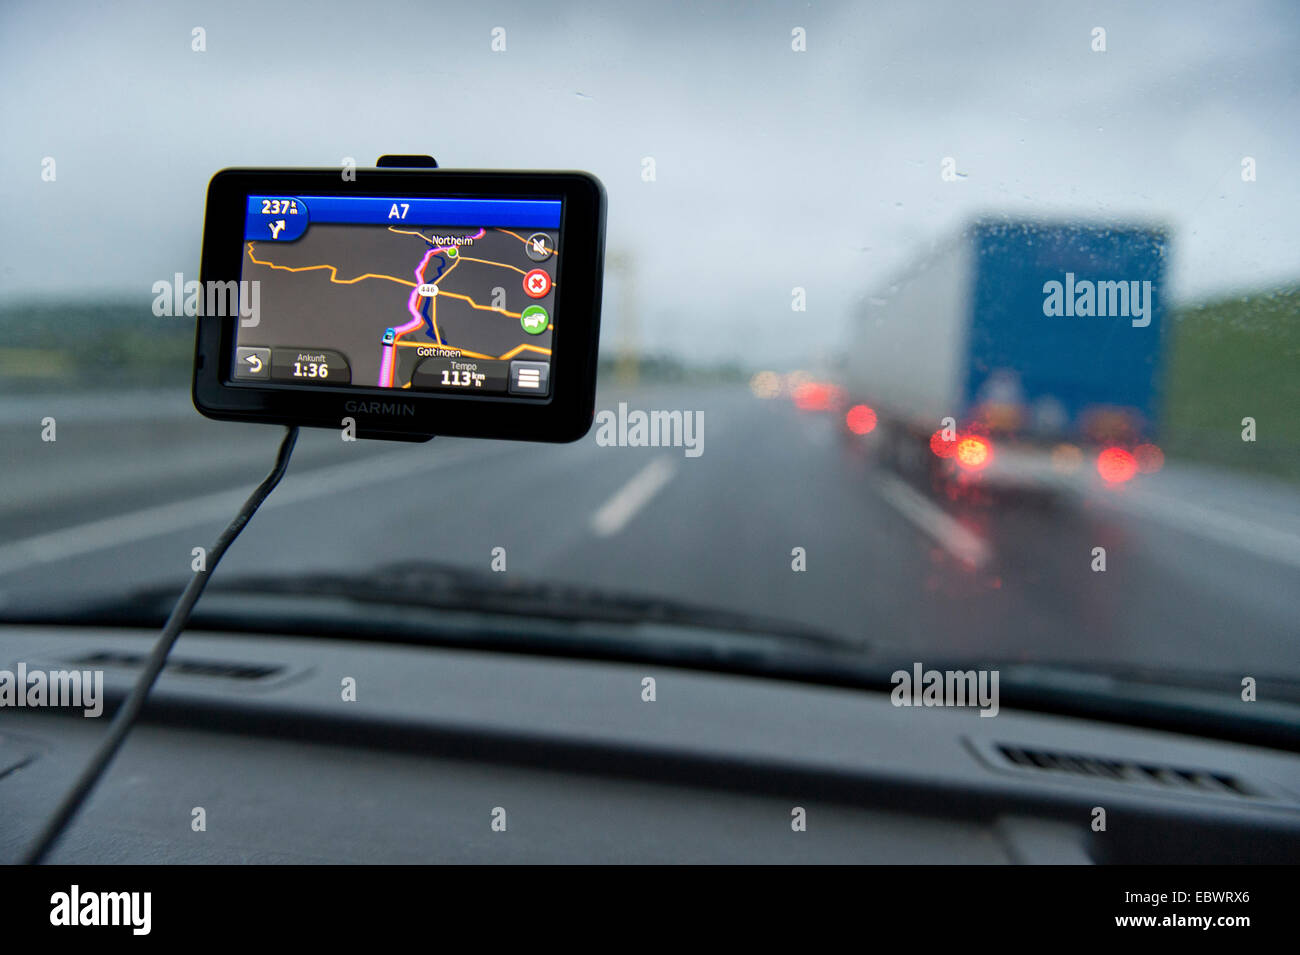 View through the windscreen of a car, satnav device, Germany - Stock Image